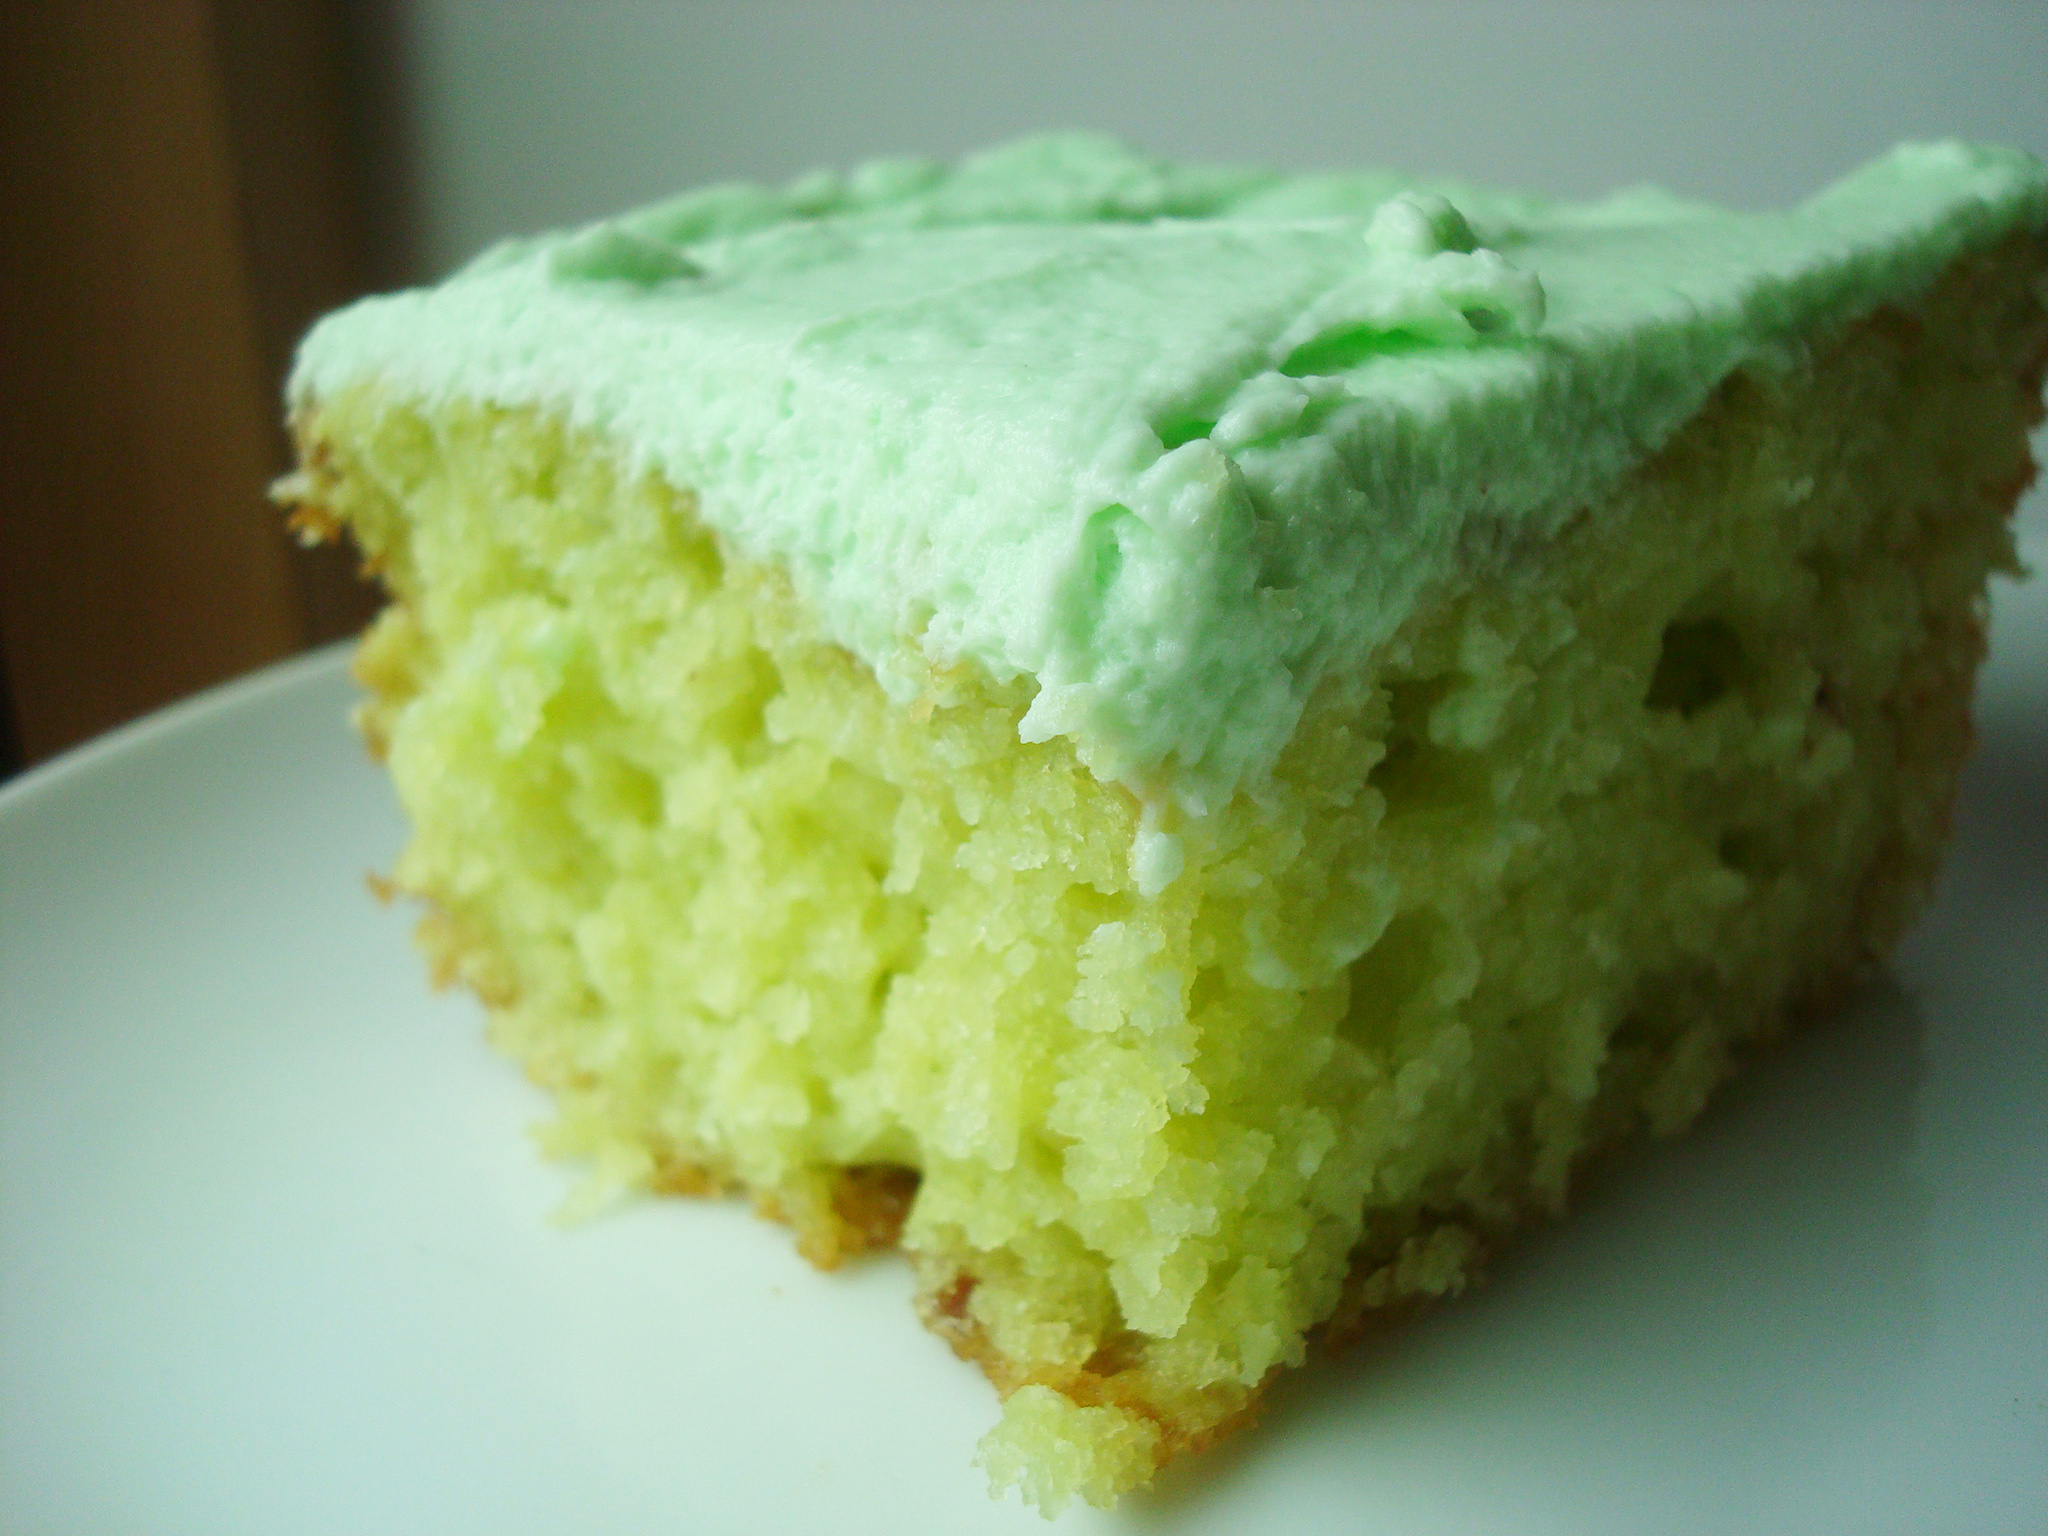 Slice of Green Cake with Green Icing